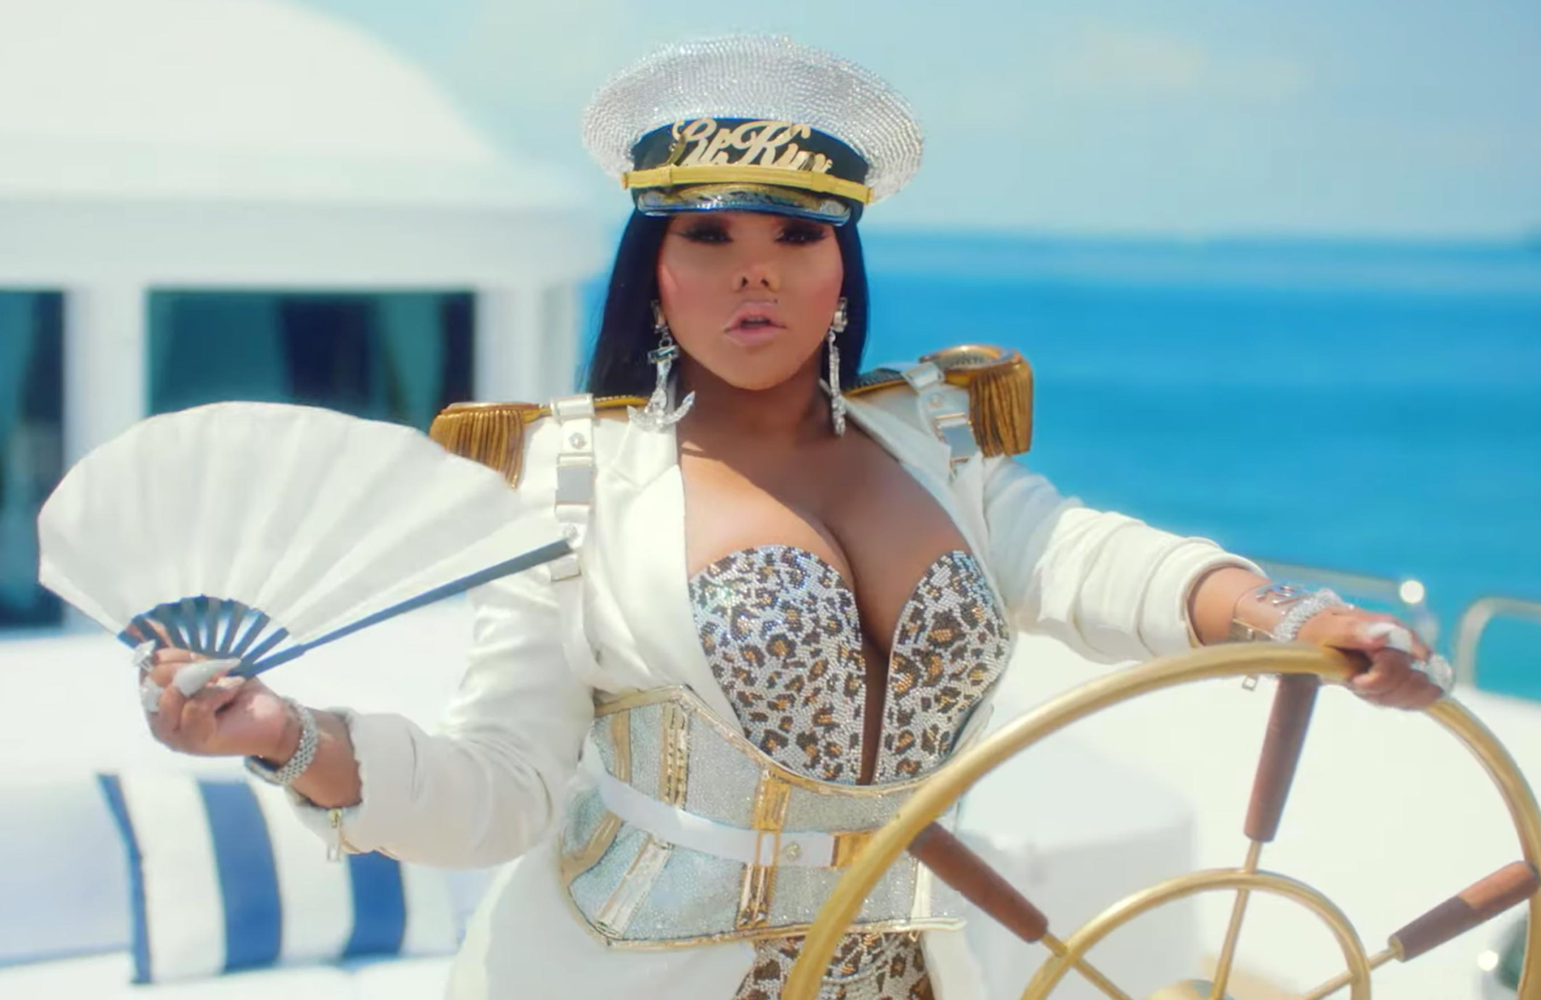 Lil' Kim sets a course for adventure in Girls Cruise (VH1)